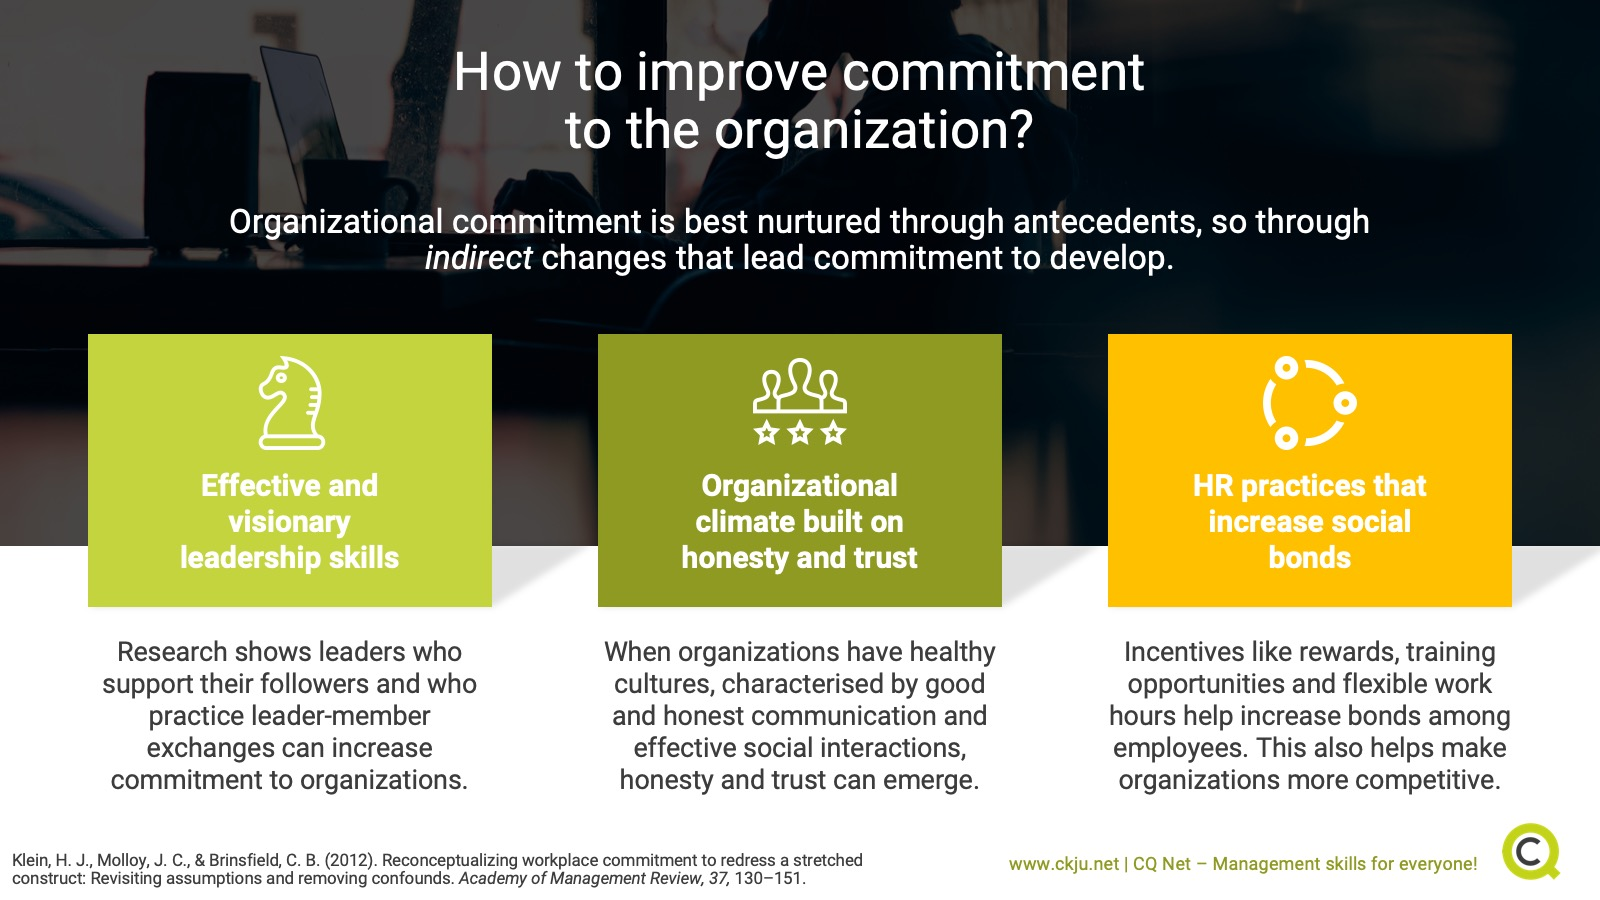 How to improve commitment to the organization?